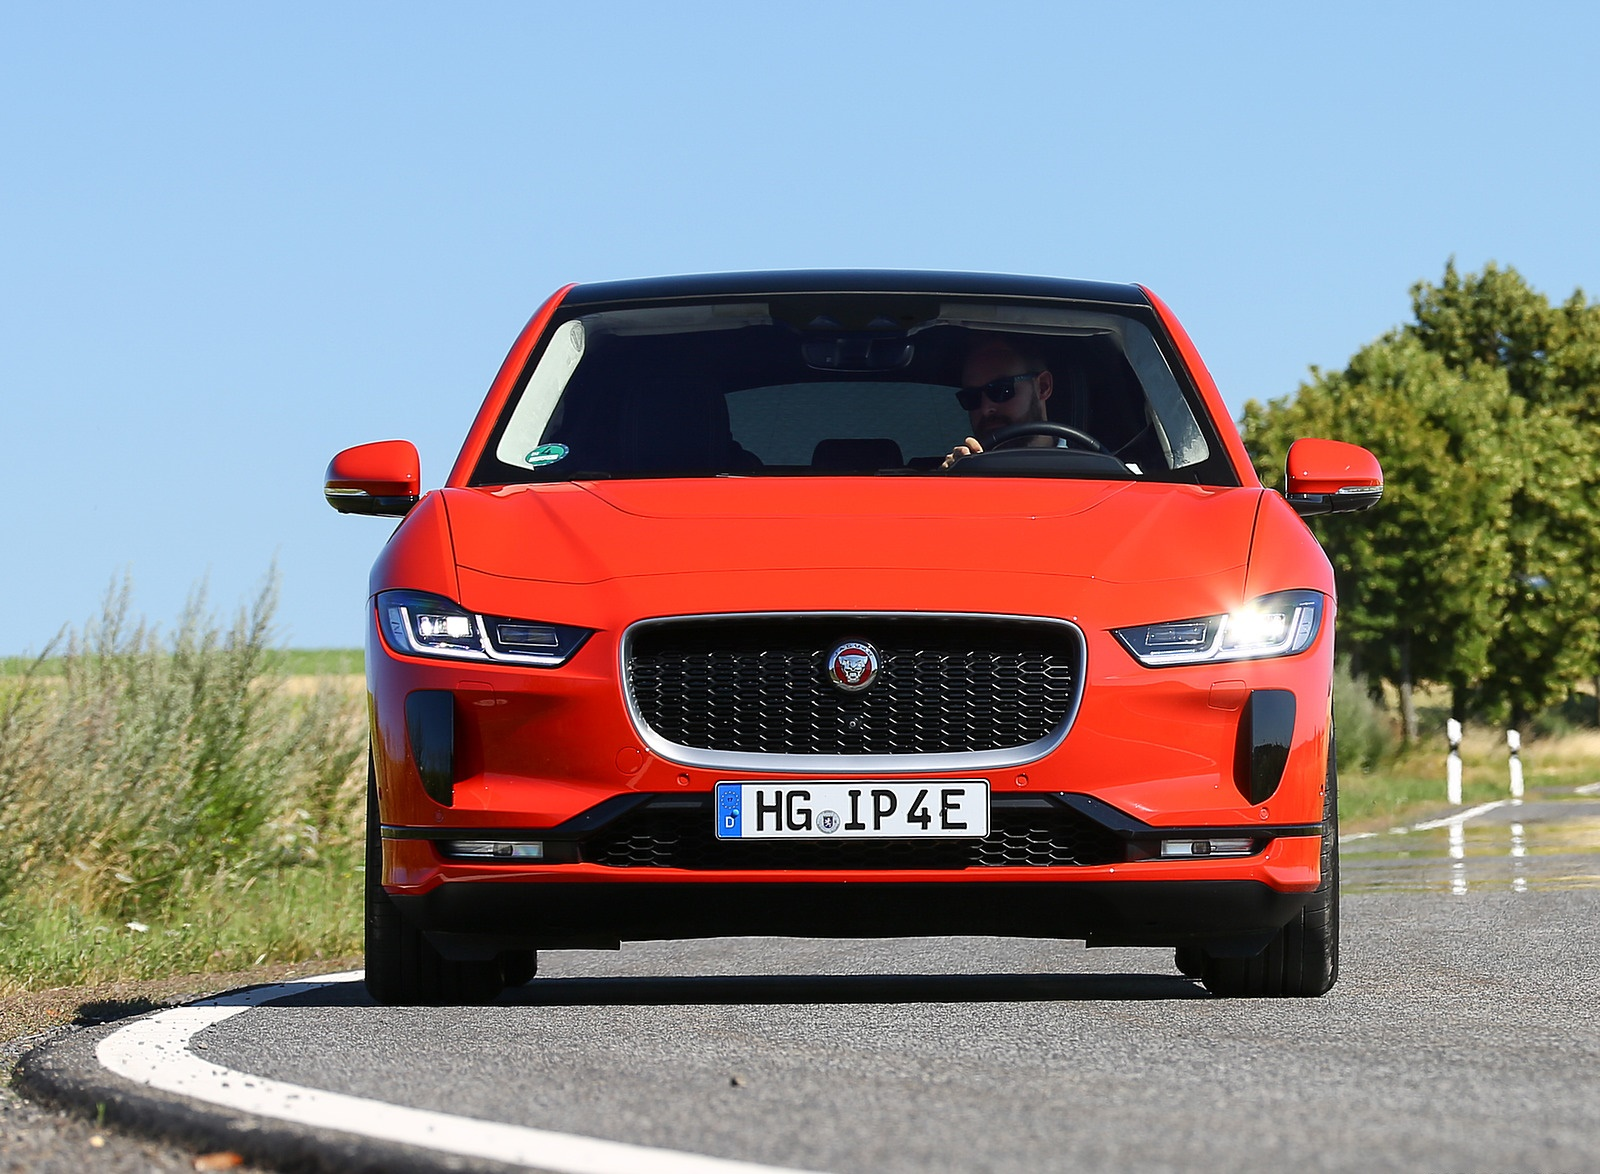 2019 Jaguar I-PACE EV400 AWD HSE First Edition (Color: Photon Red) Front Wallpapers (13)